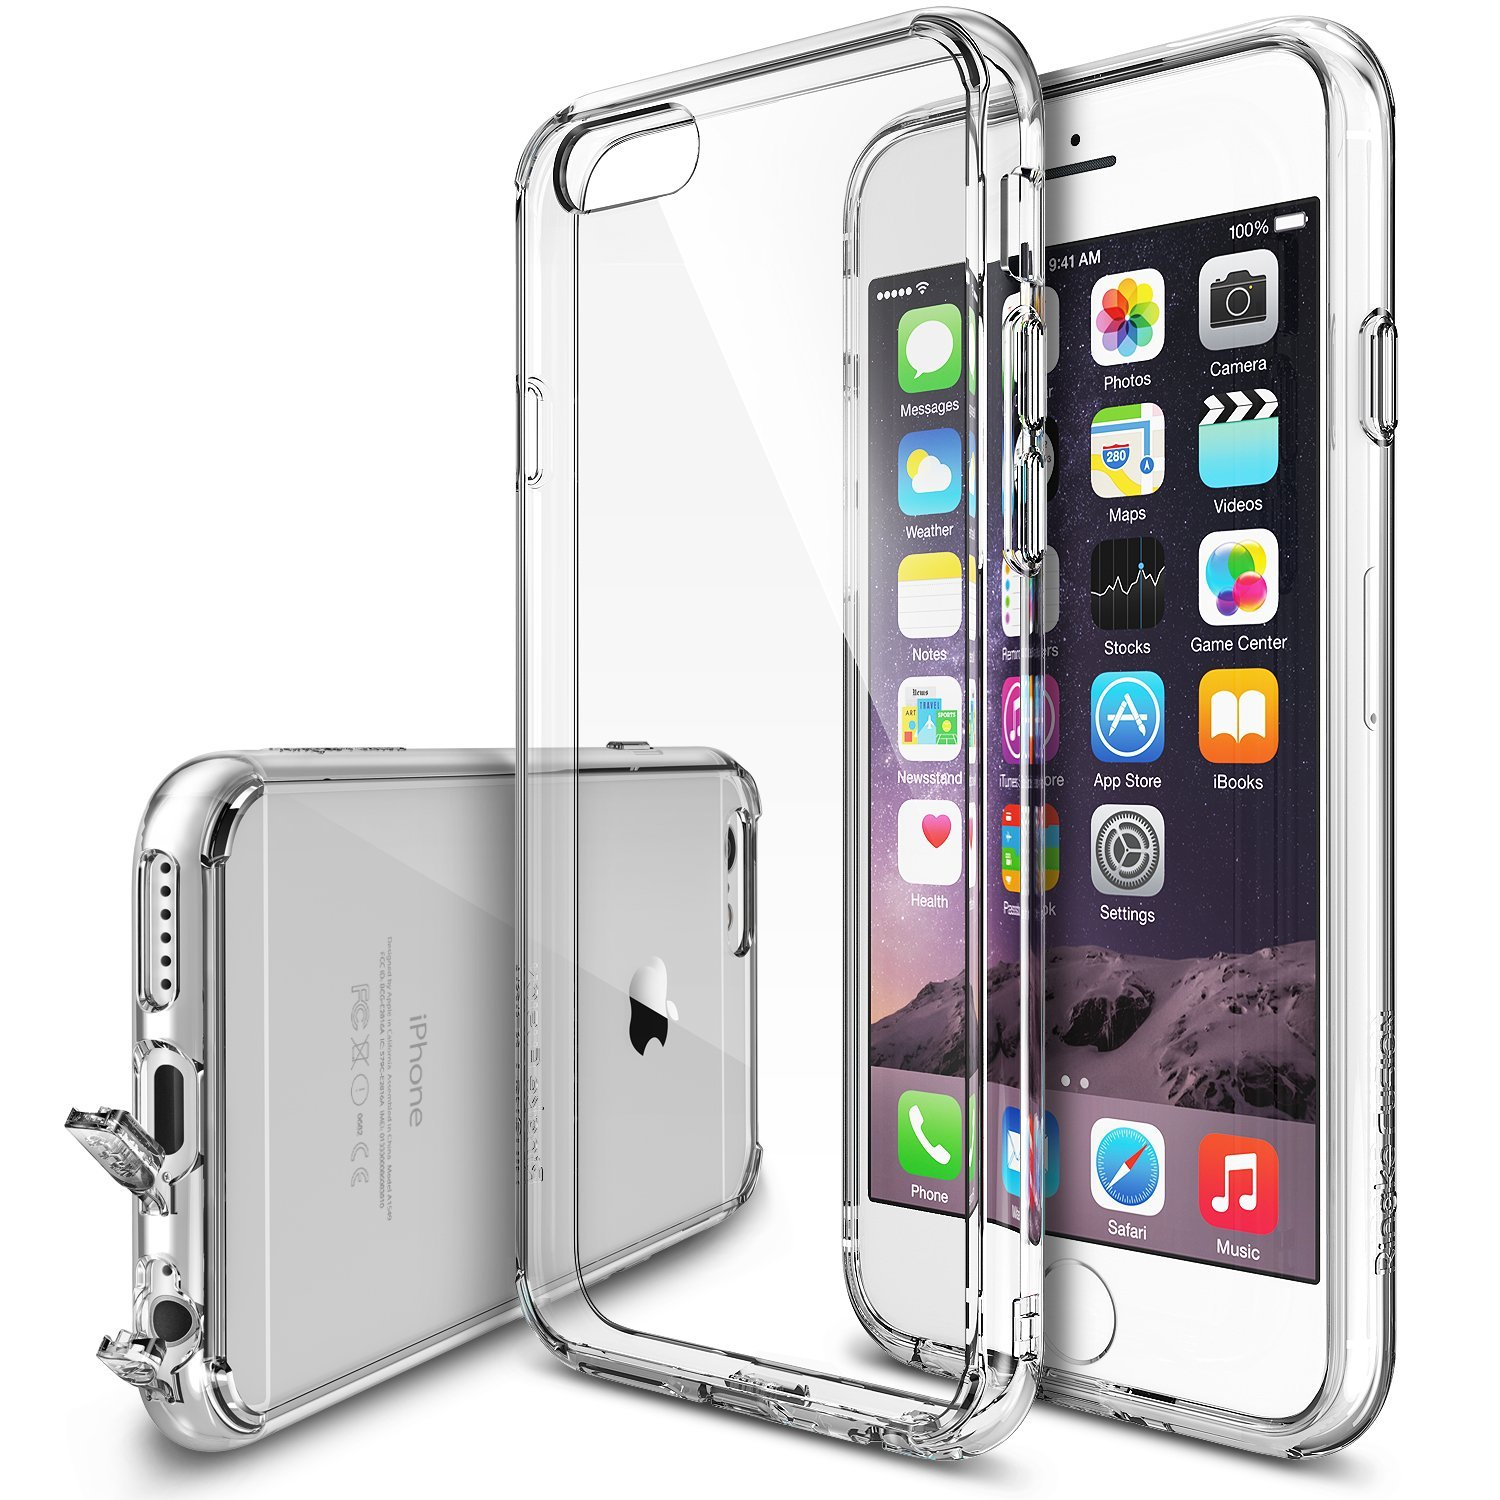 Ringke Fusion iPhone 6 case